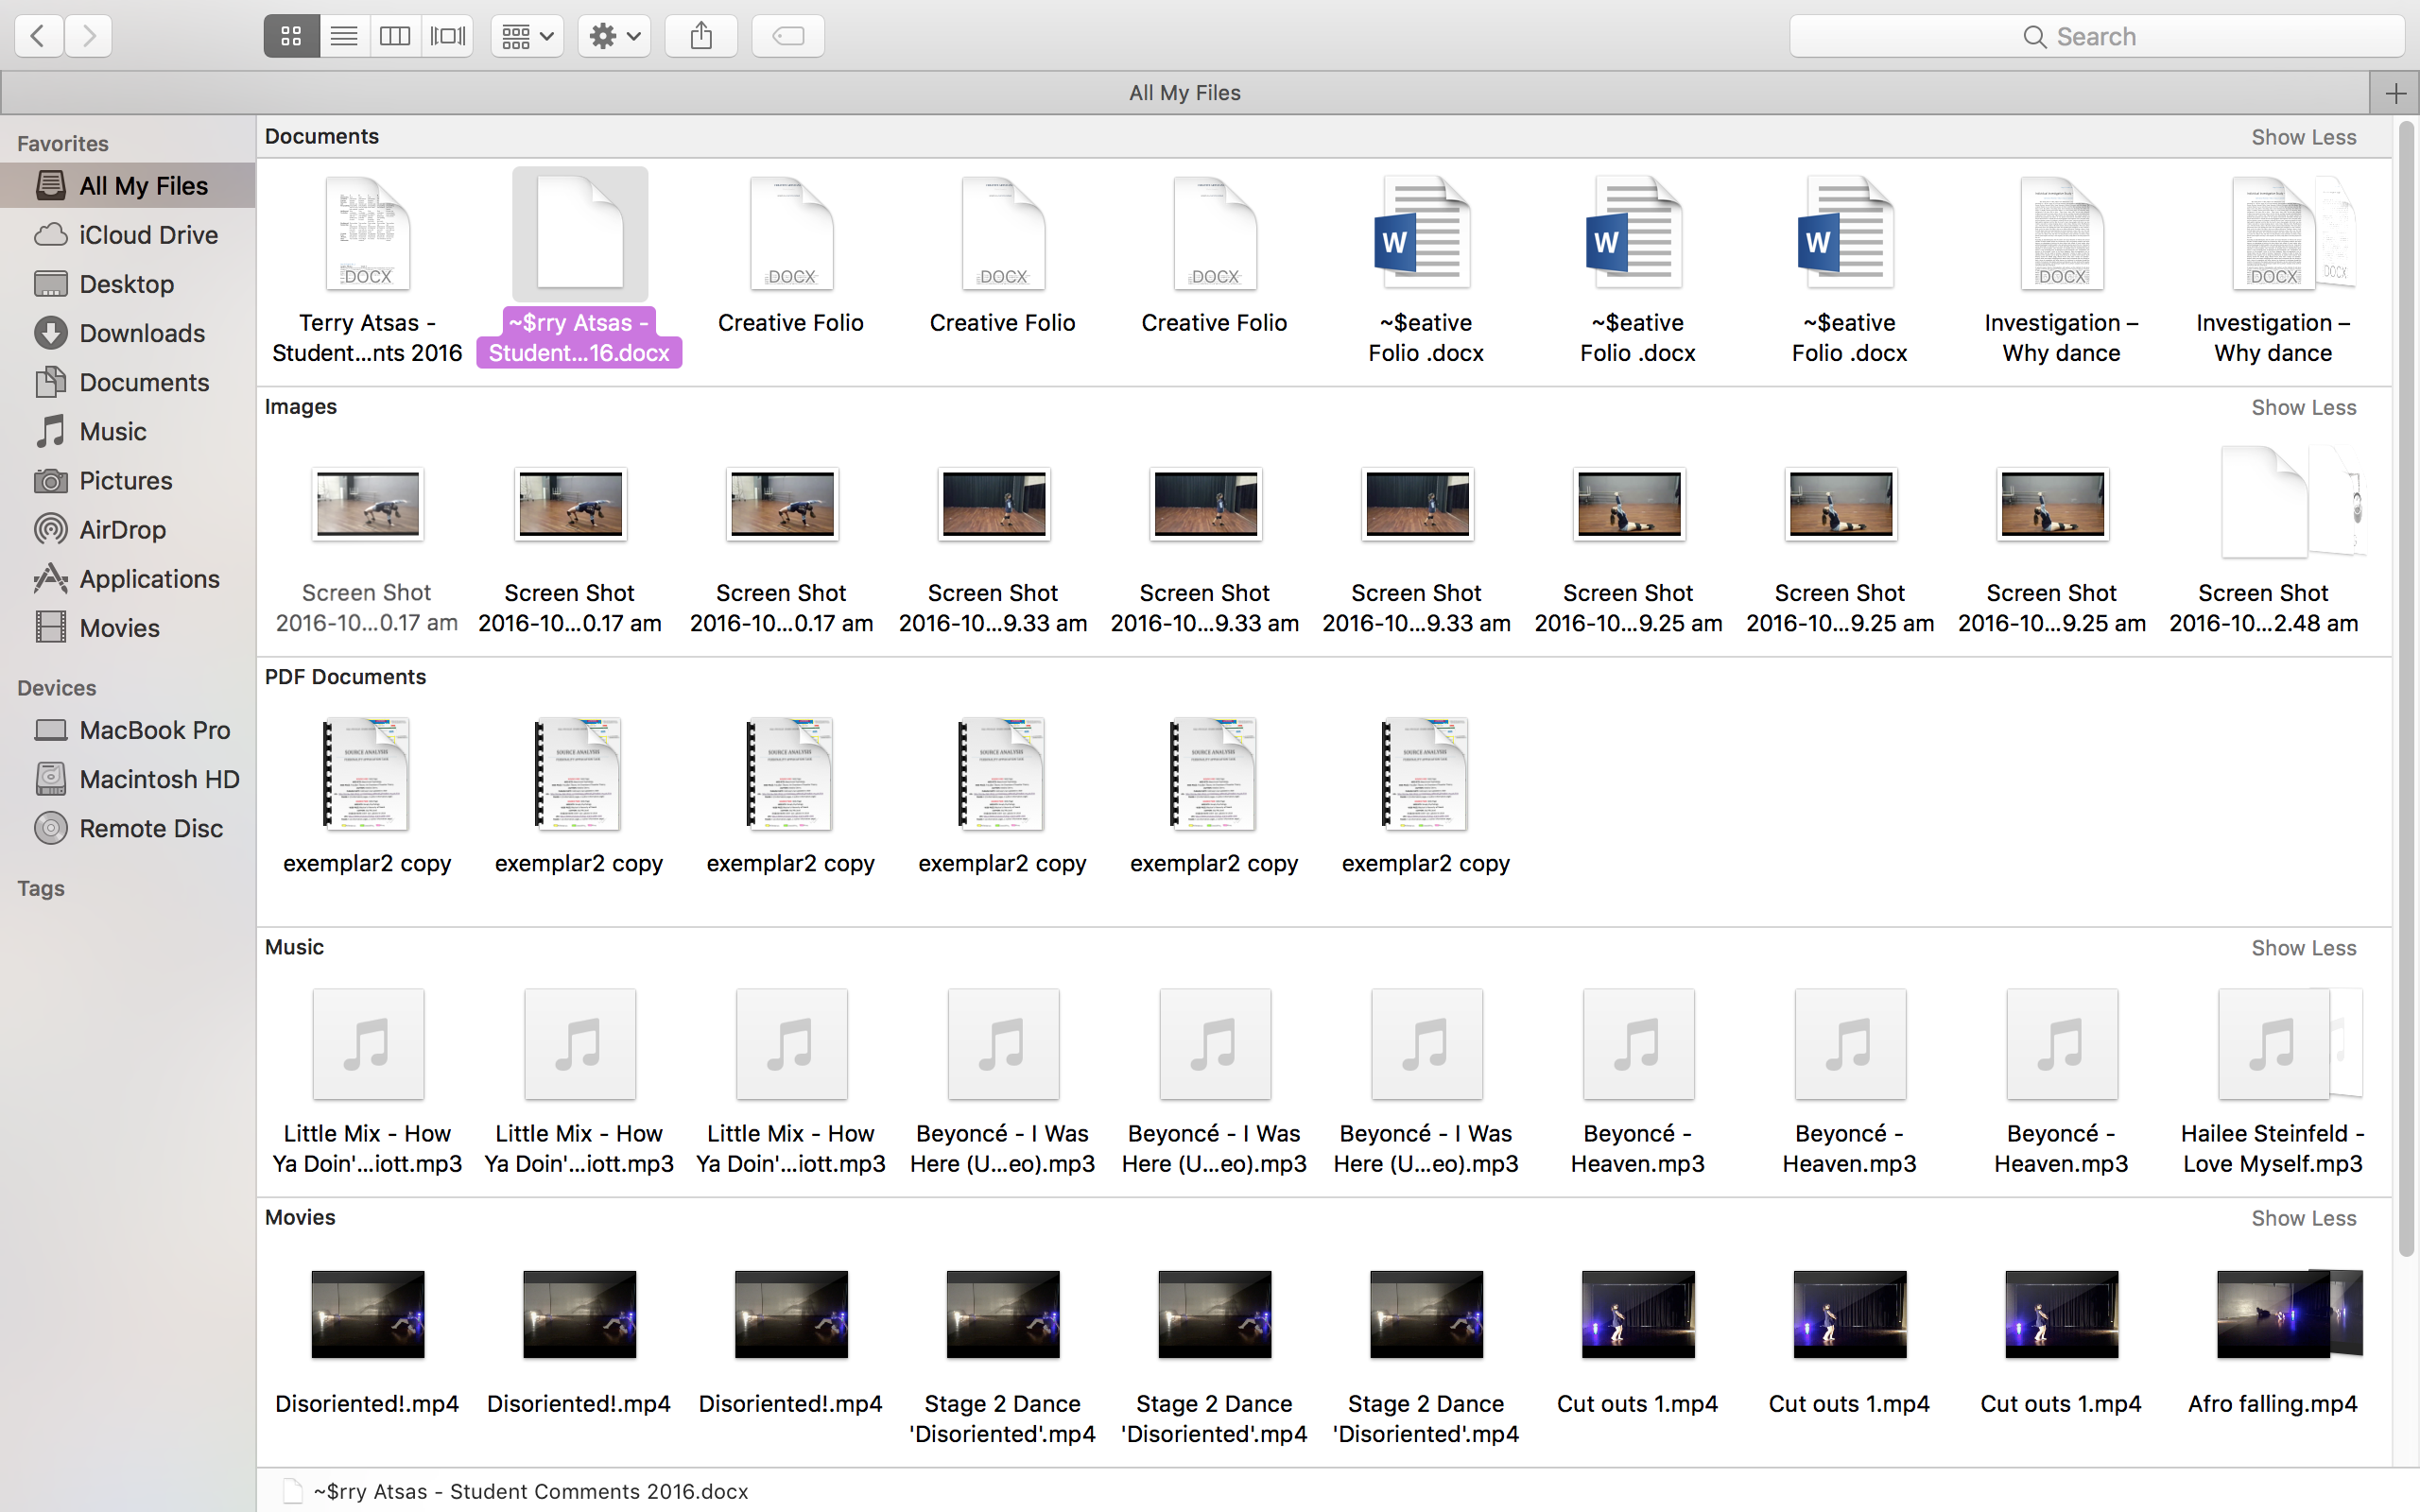 Finder Shows All My Files 3 Times - Apple Community